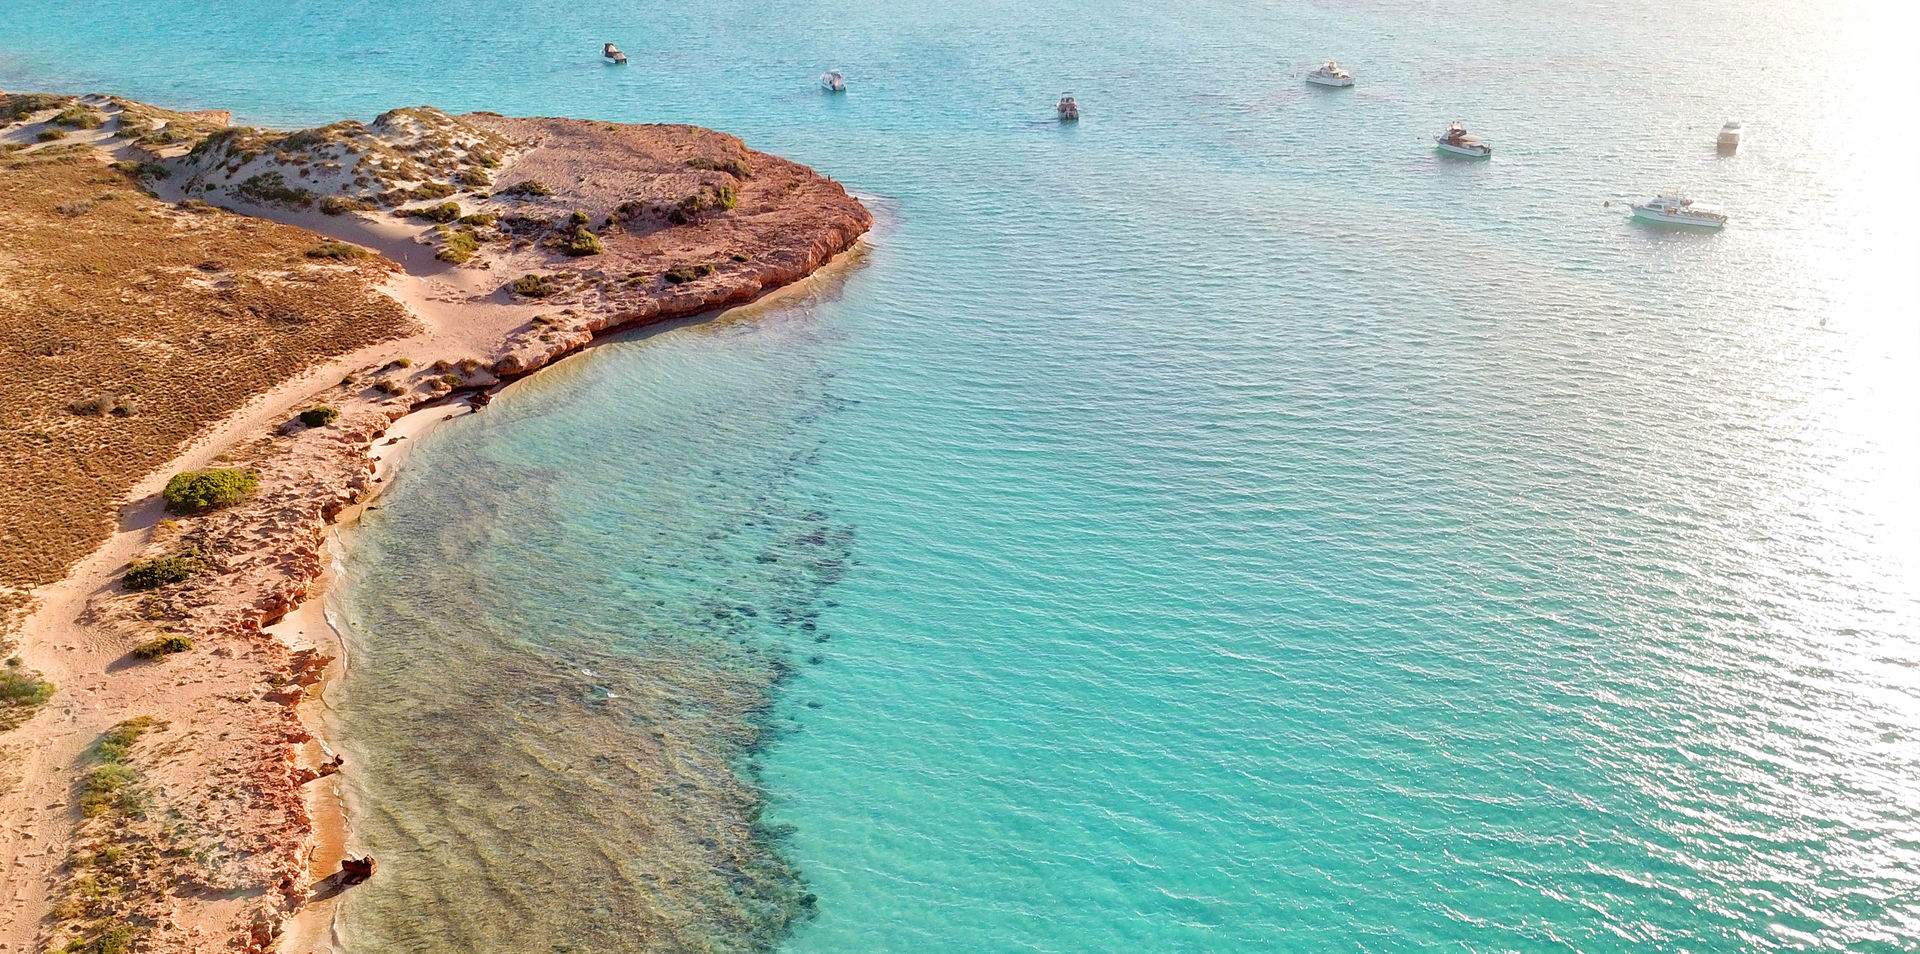 Ningaloo & The Bluewater Wonders of Australia's West